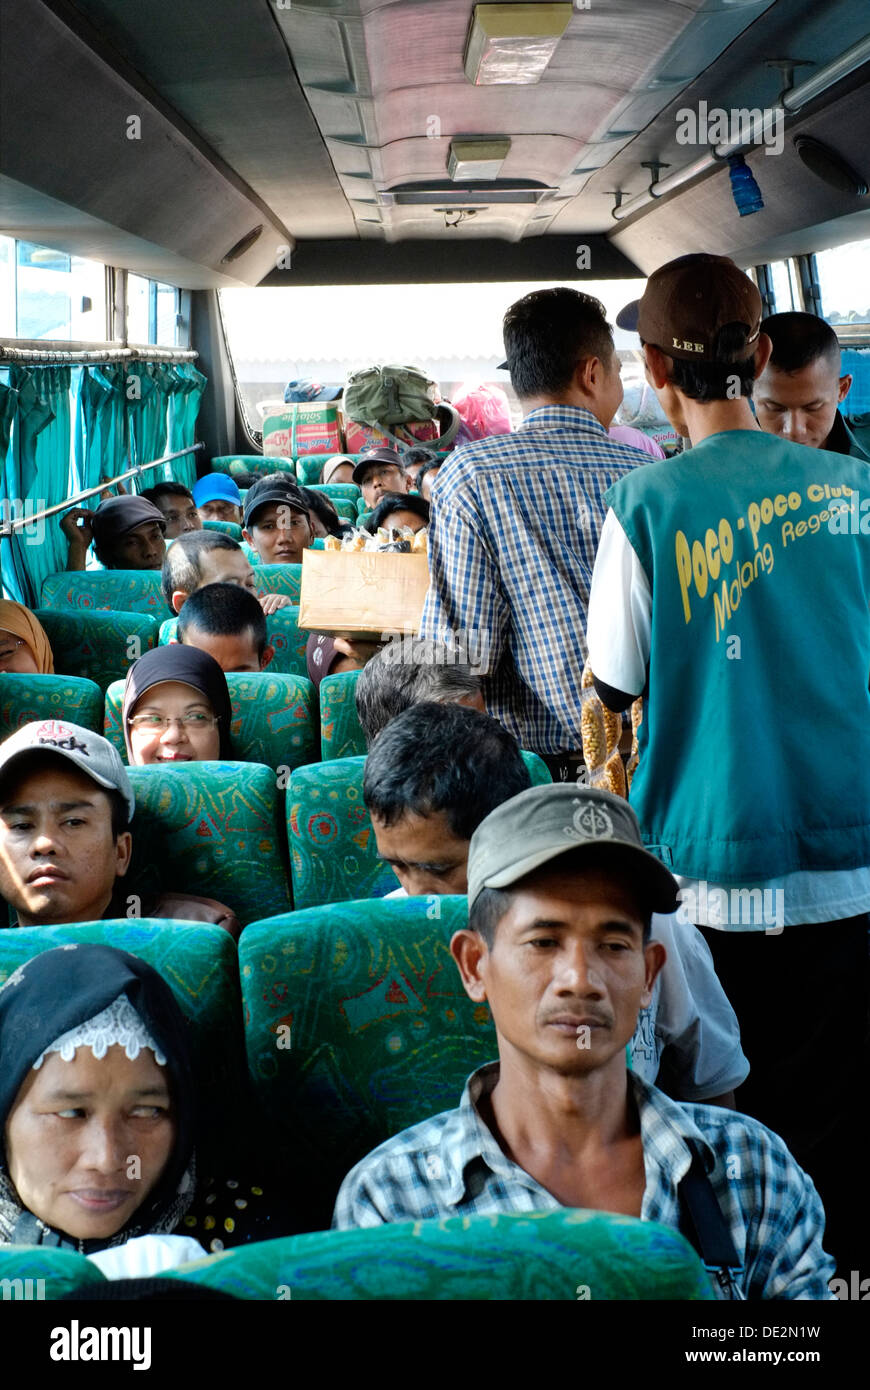 bus passengers and vendors put the public transport infrastructure under strain as the mass idul fitri holidays get underway - Stock Image